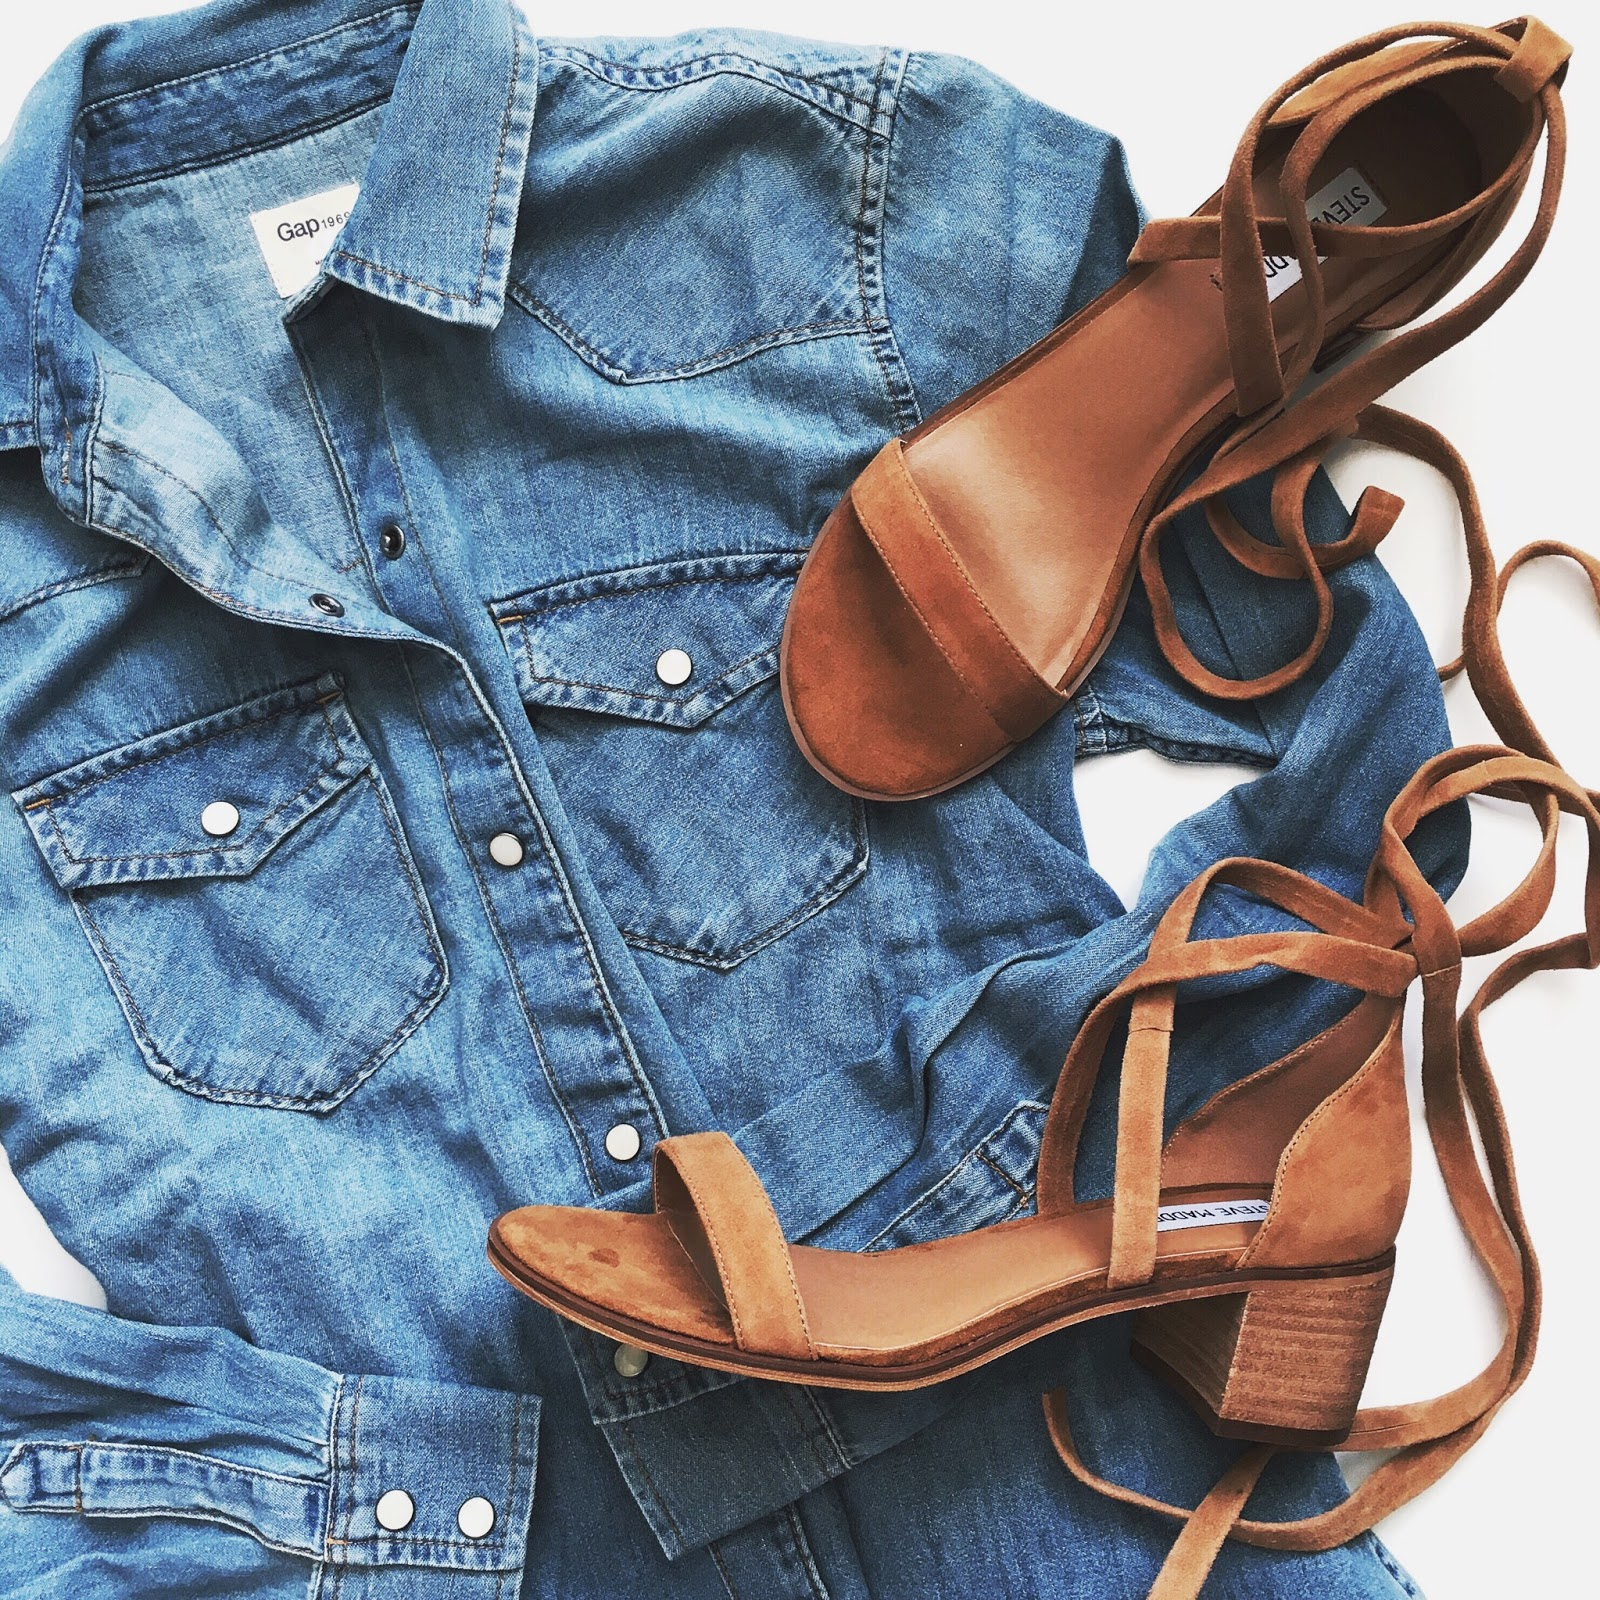 Gap western denim shirt and Steve Madden cognac suede sandals